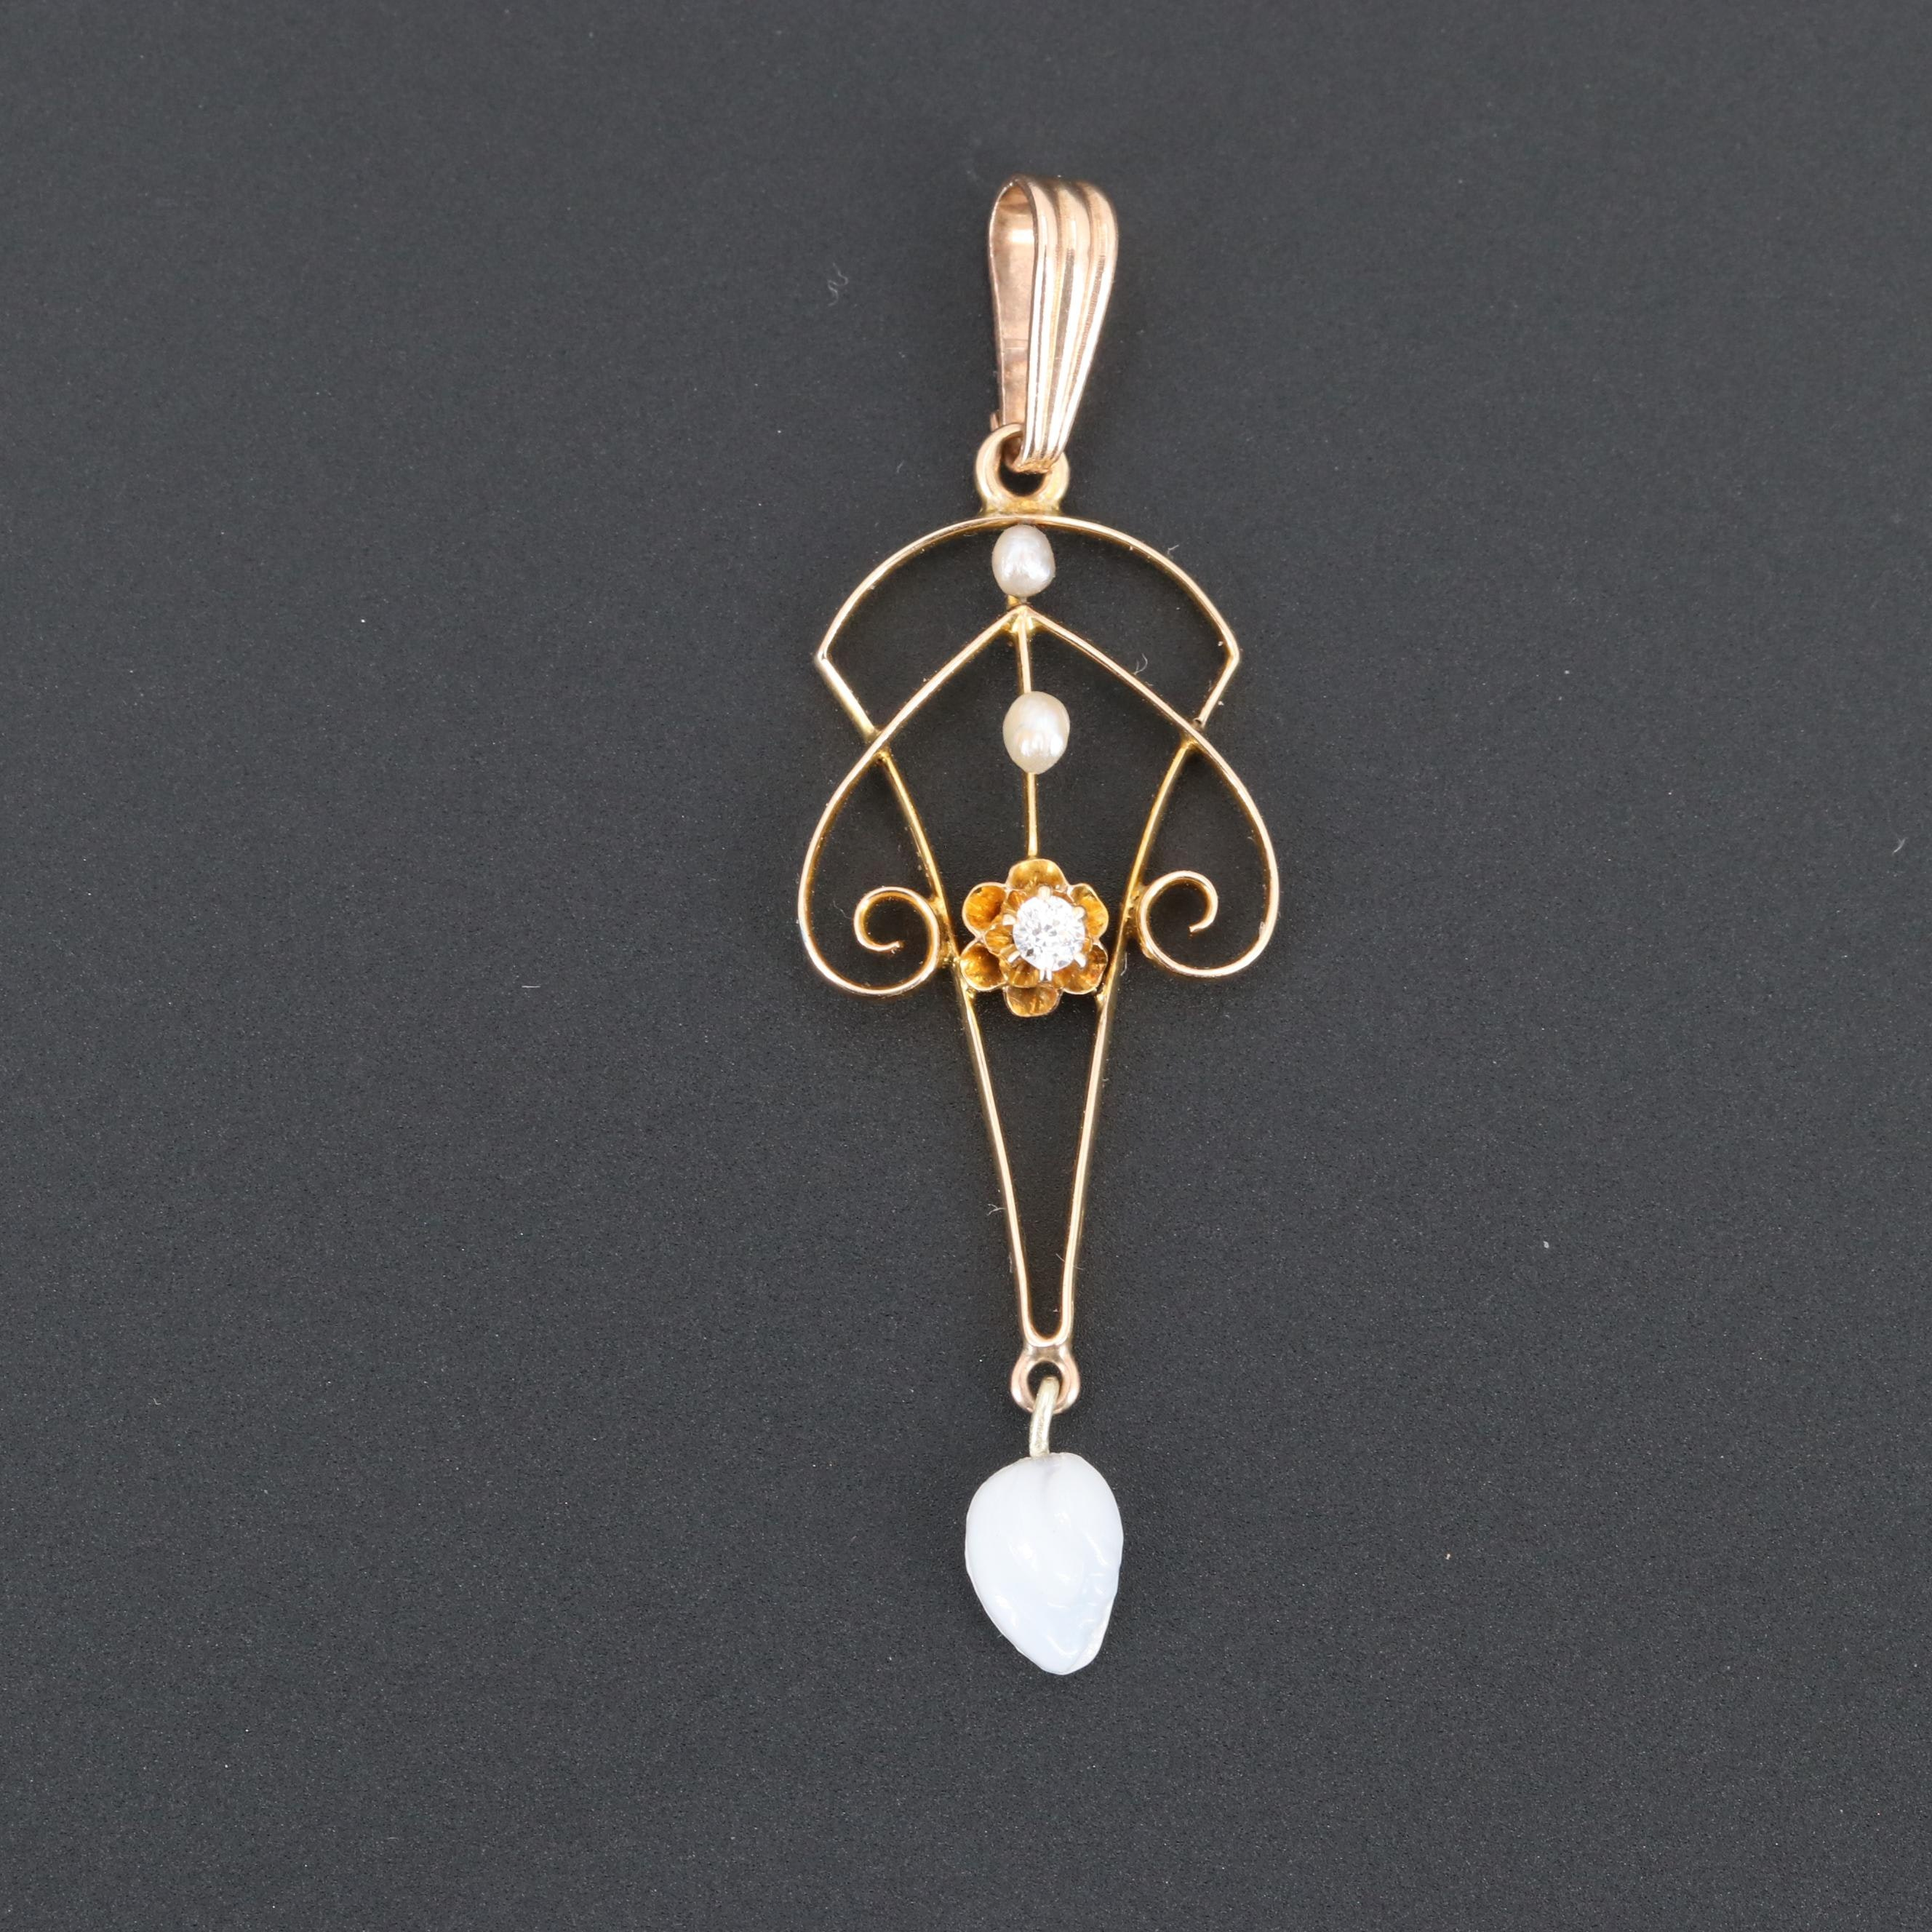 Vintage 14K Yellow Gold Seed Pearl, Diamond and Glass Lavaleir Pendant